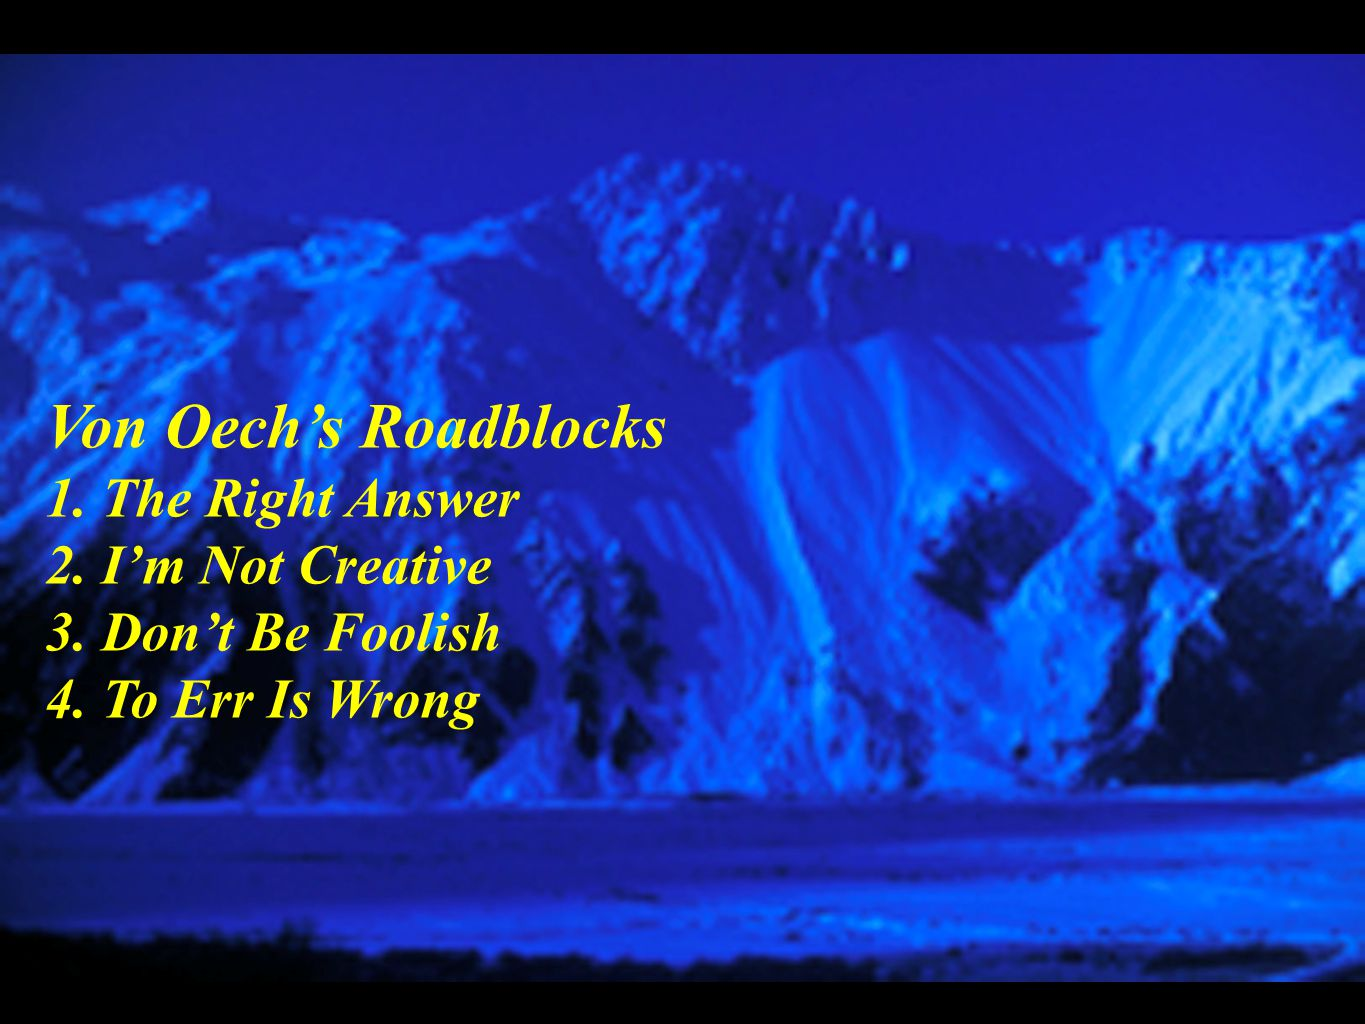 Von Oech's Roadblocks 1. The Right Answer 2. I'm Not Creative 3. Don't Be Foolish 4. To Err Is Wrong